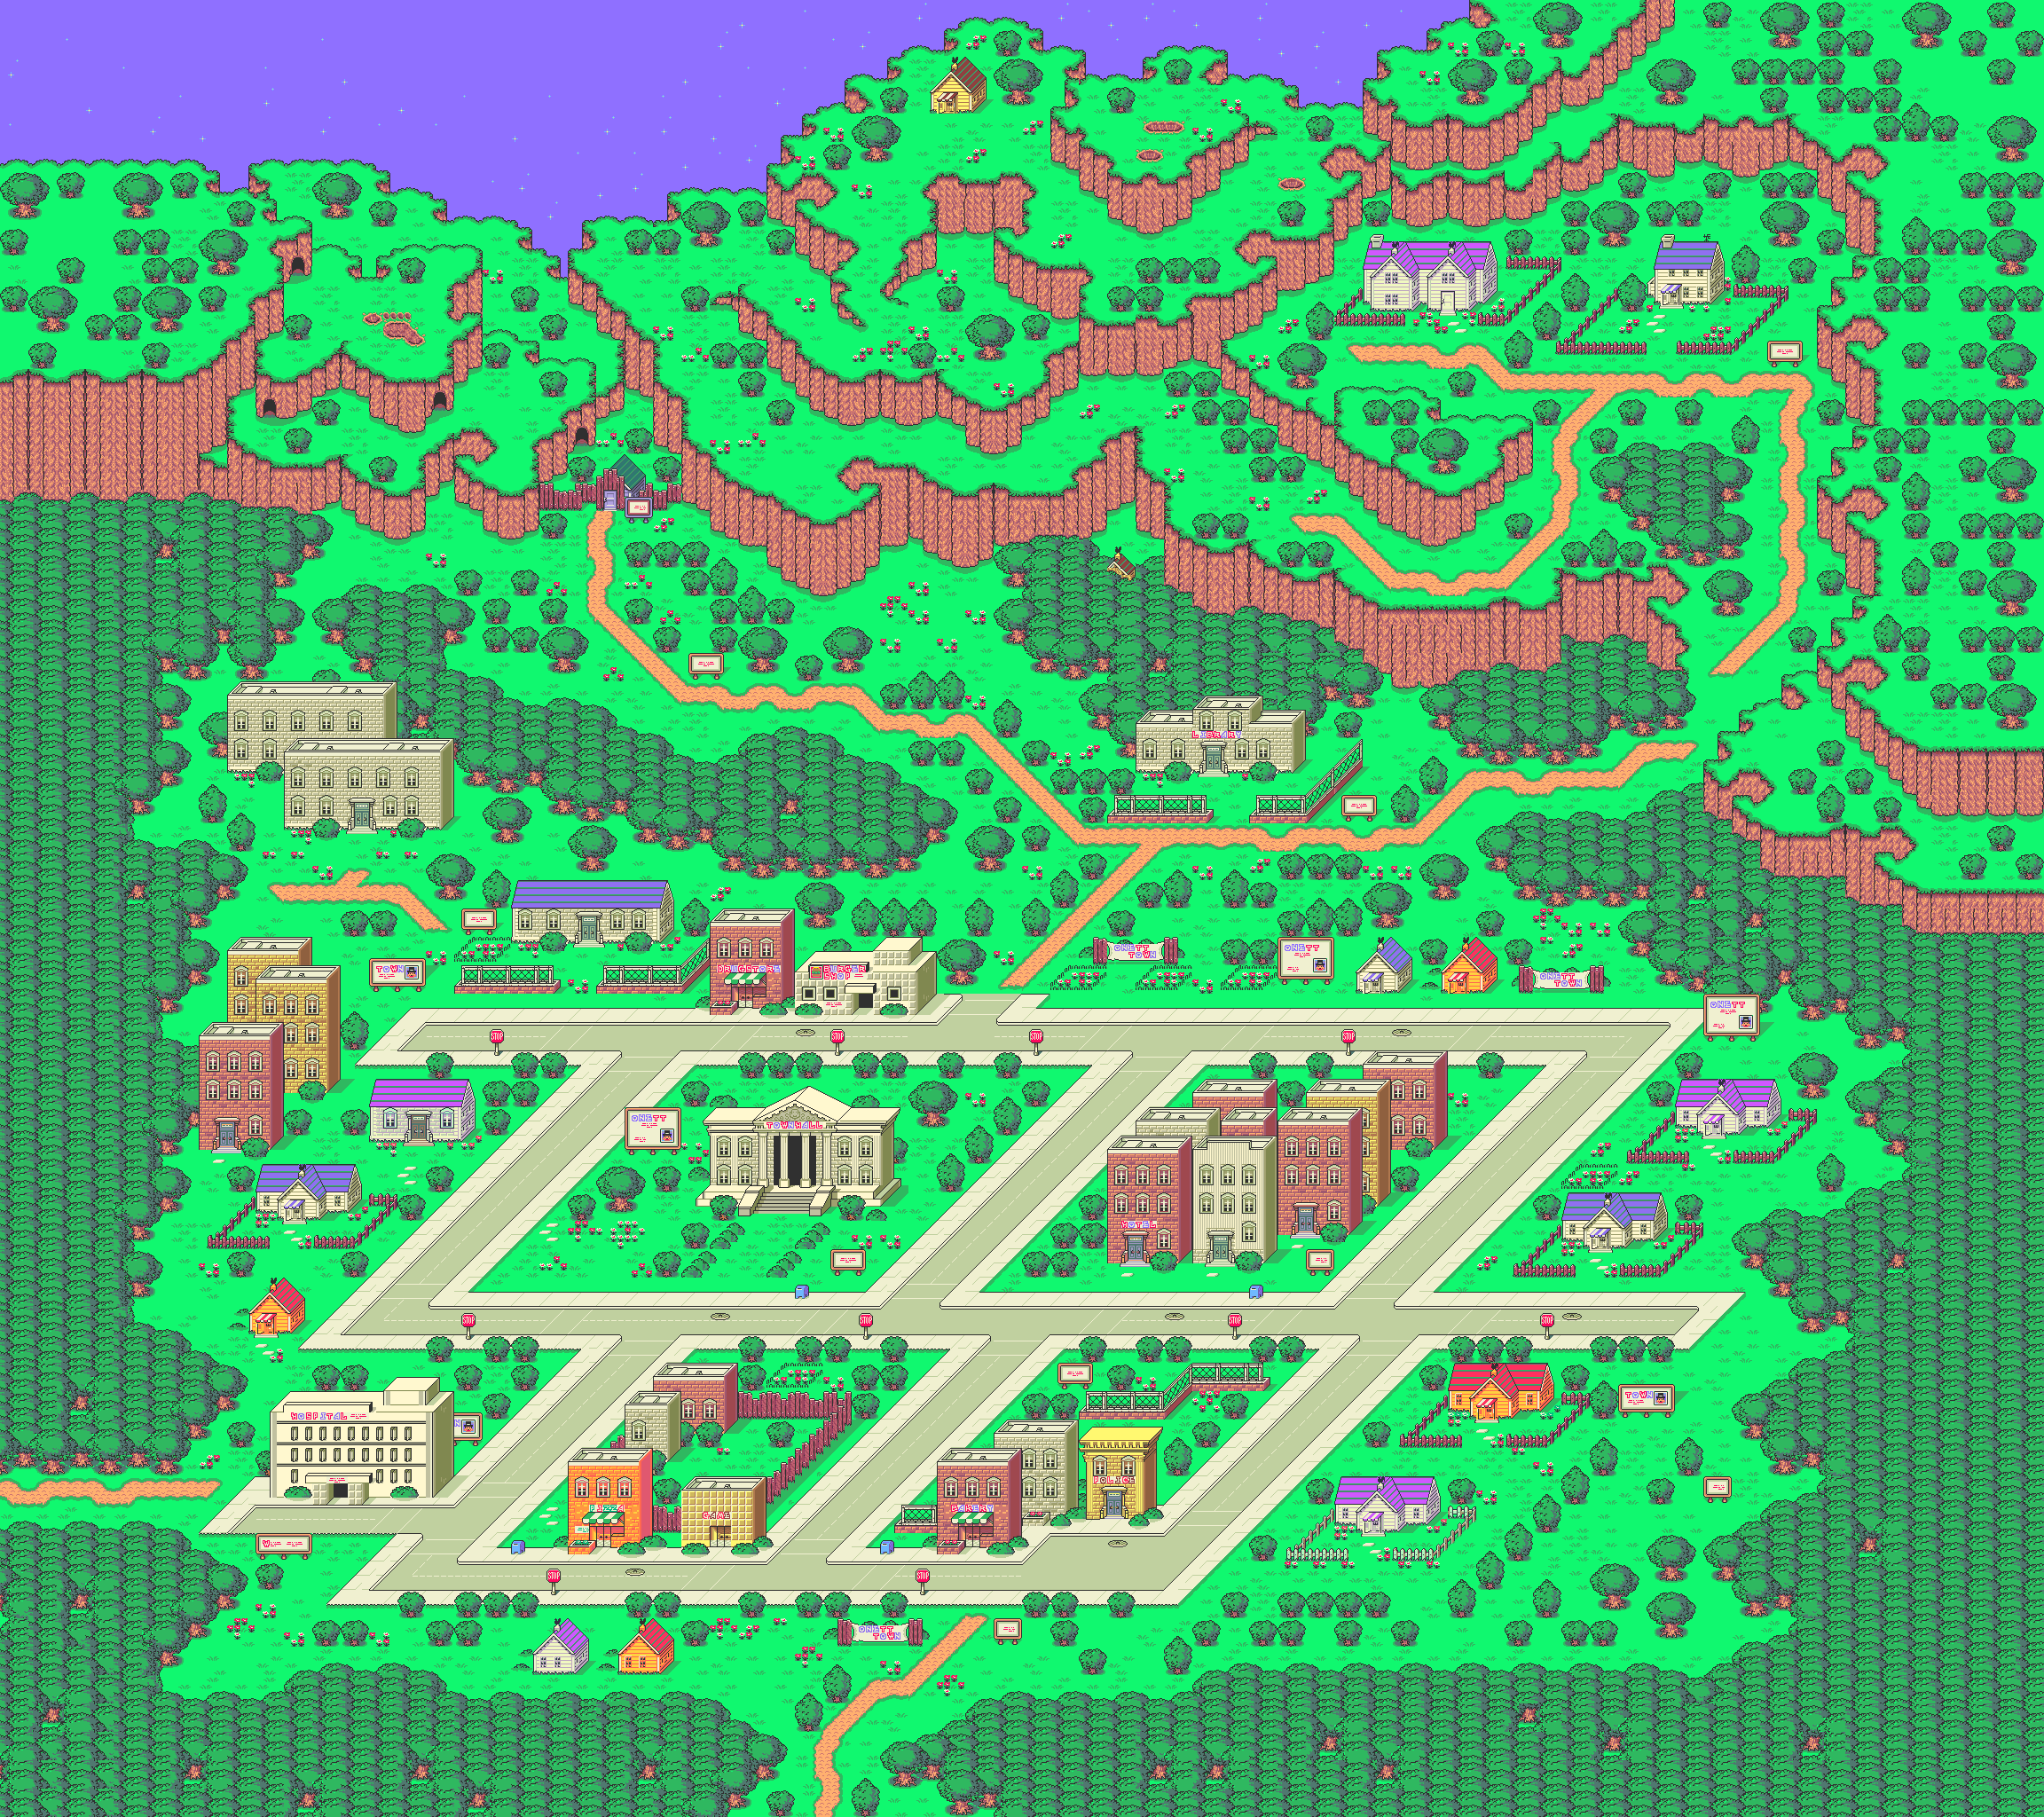 V.39 Earthbound, HD Widescreen Images